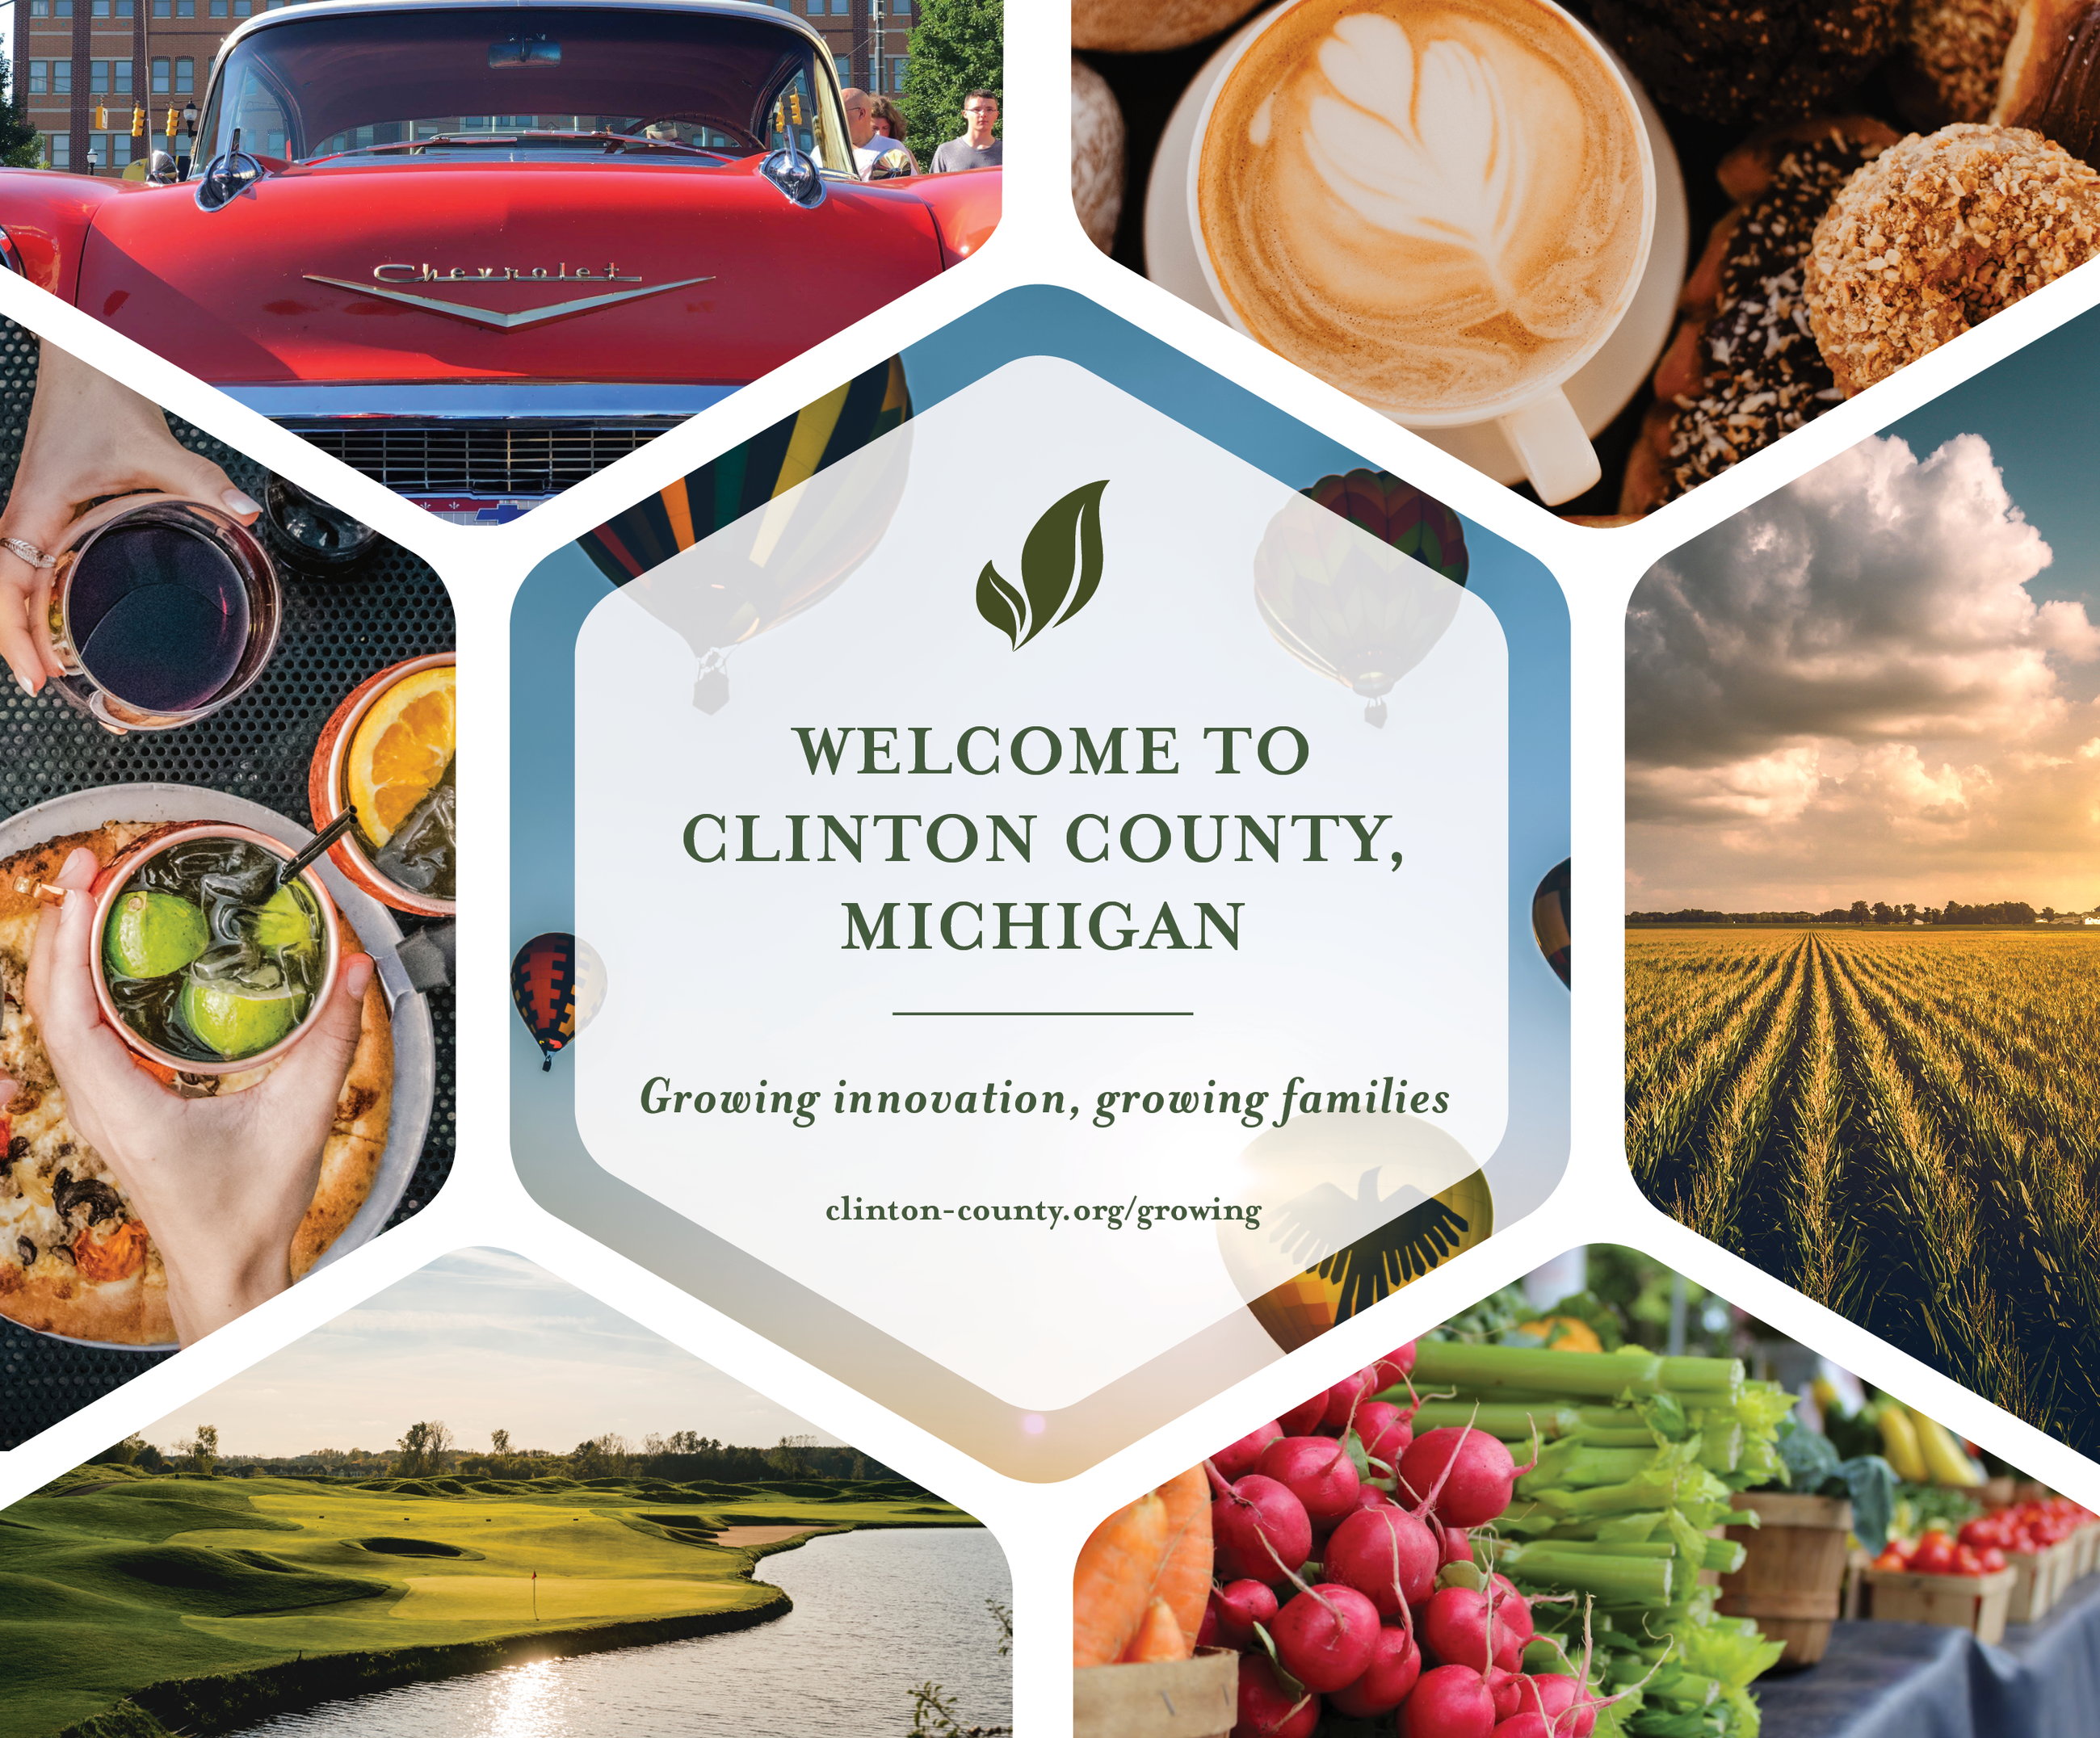 Welcome to Clinton County Collage of Images